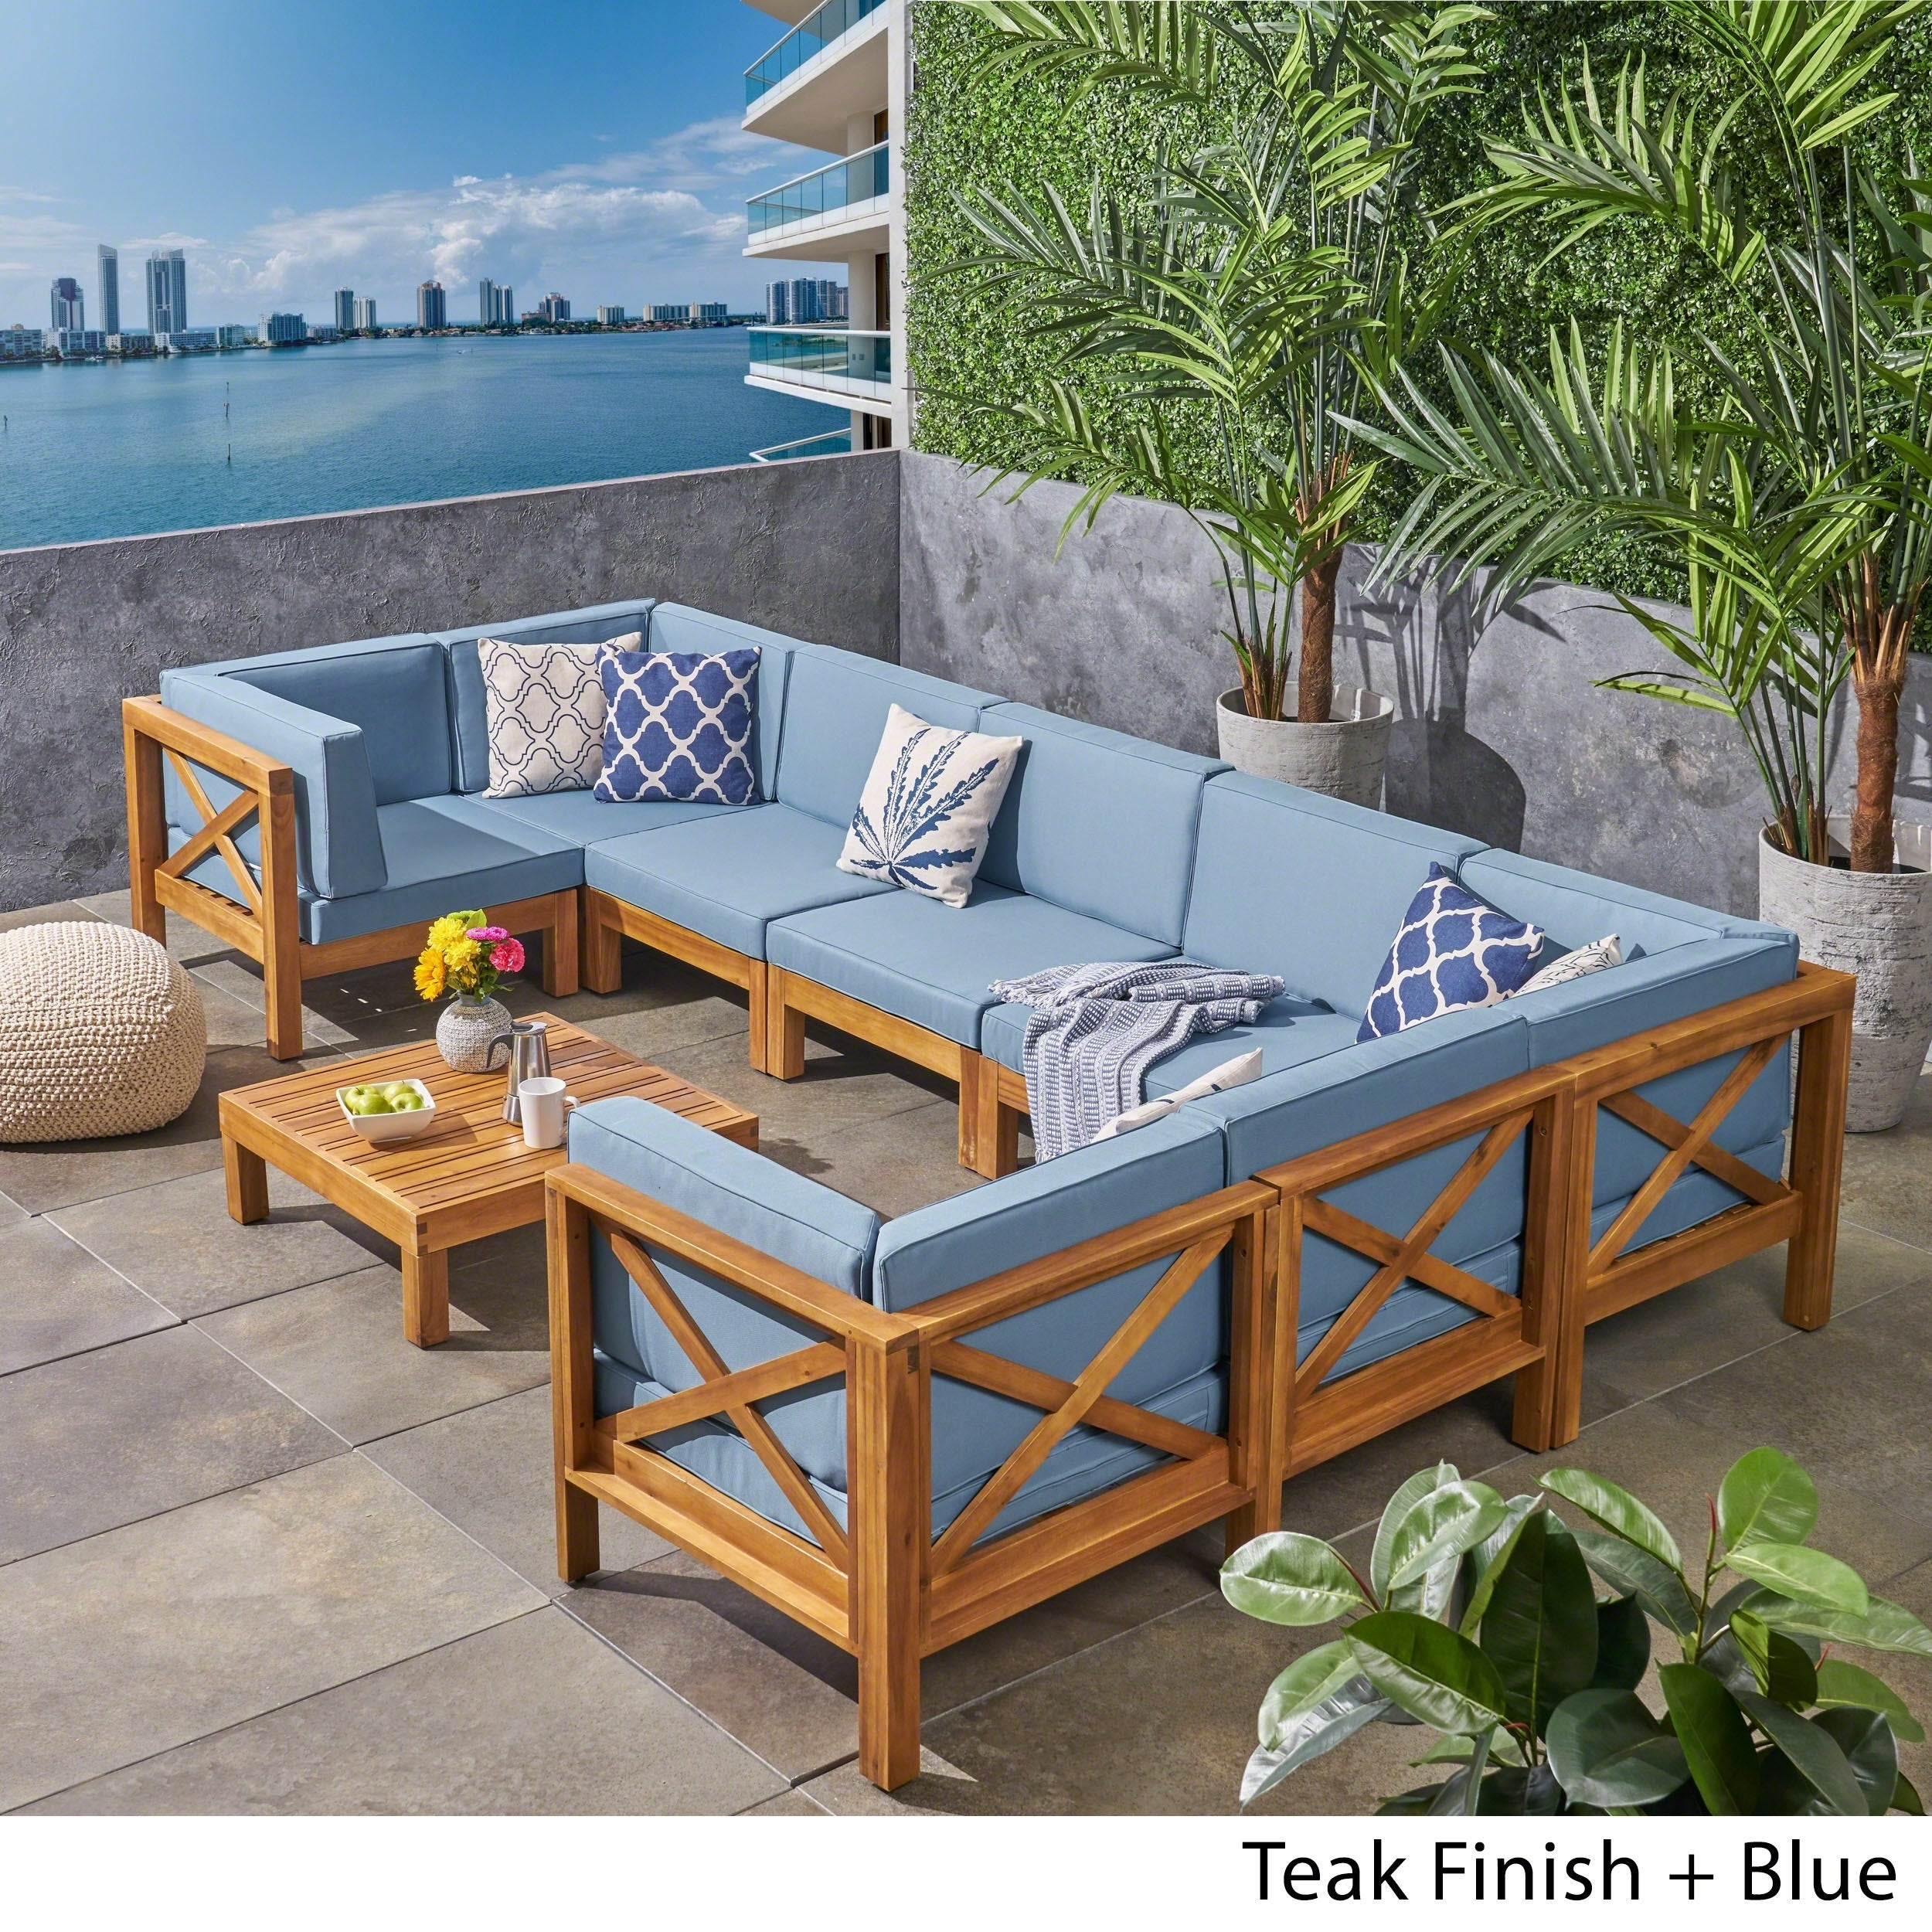 Brava Outdoor 8 Seater Acacia Wood Sectional Sofa Set By Christopher Knight Home